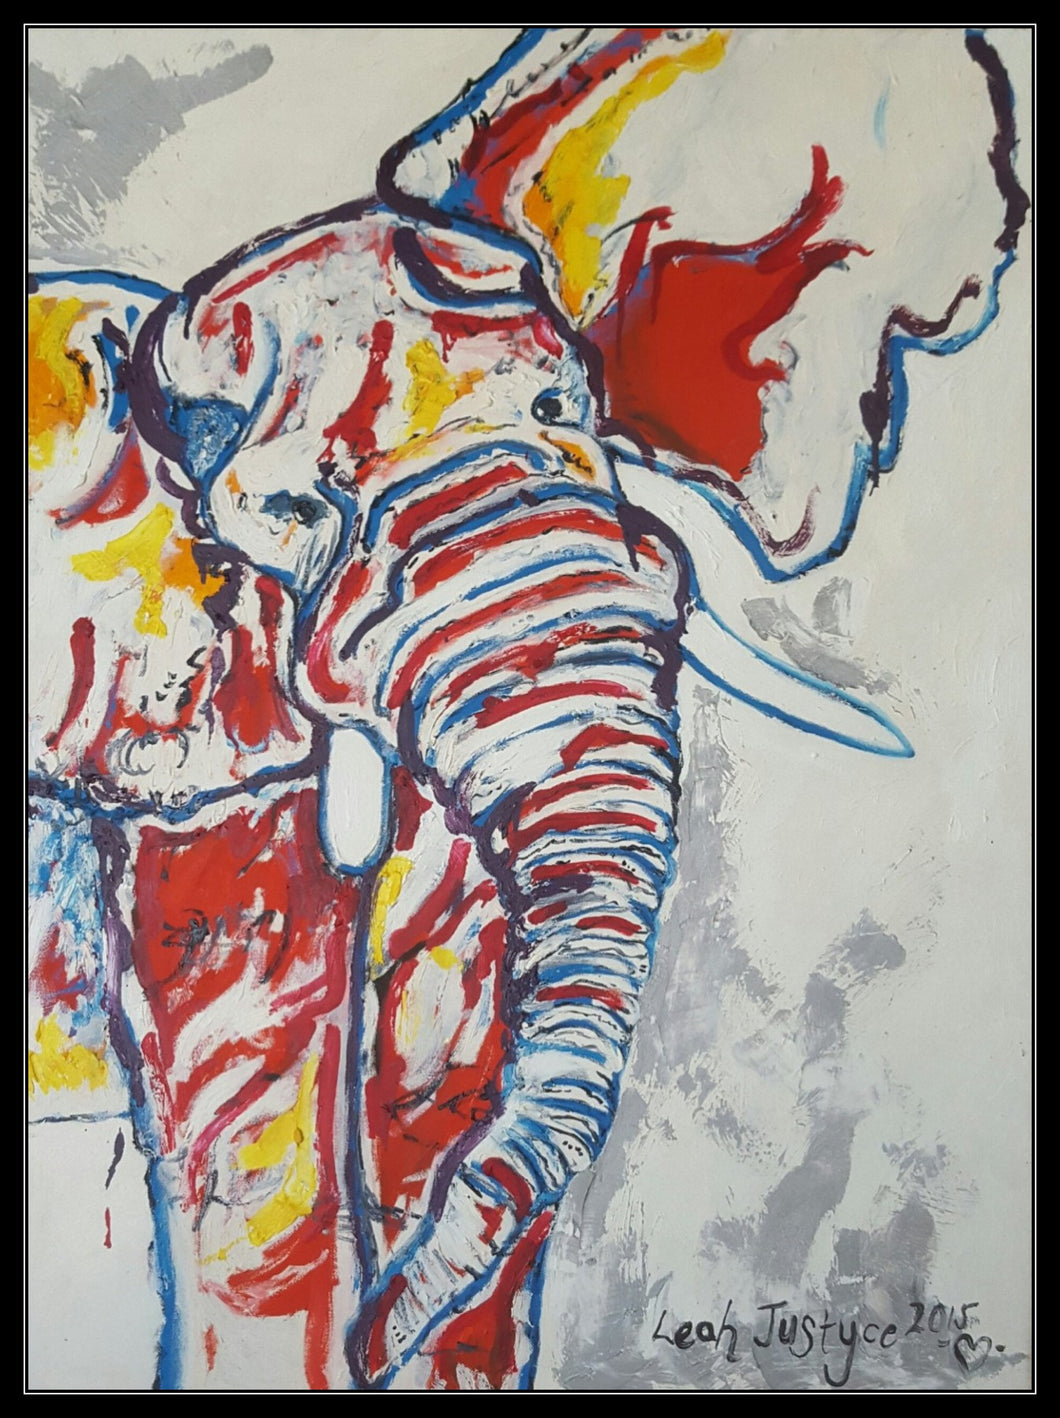 RED, BLUE AND YELLOW ELEPHANT - Original Artwork FOR SALE Oil Painting By Leah Justyce (BaVA)